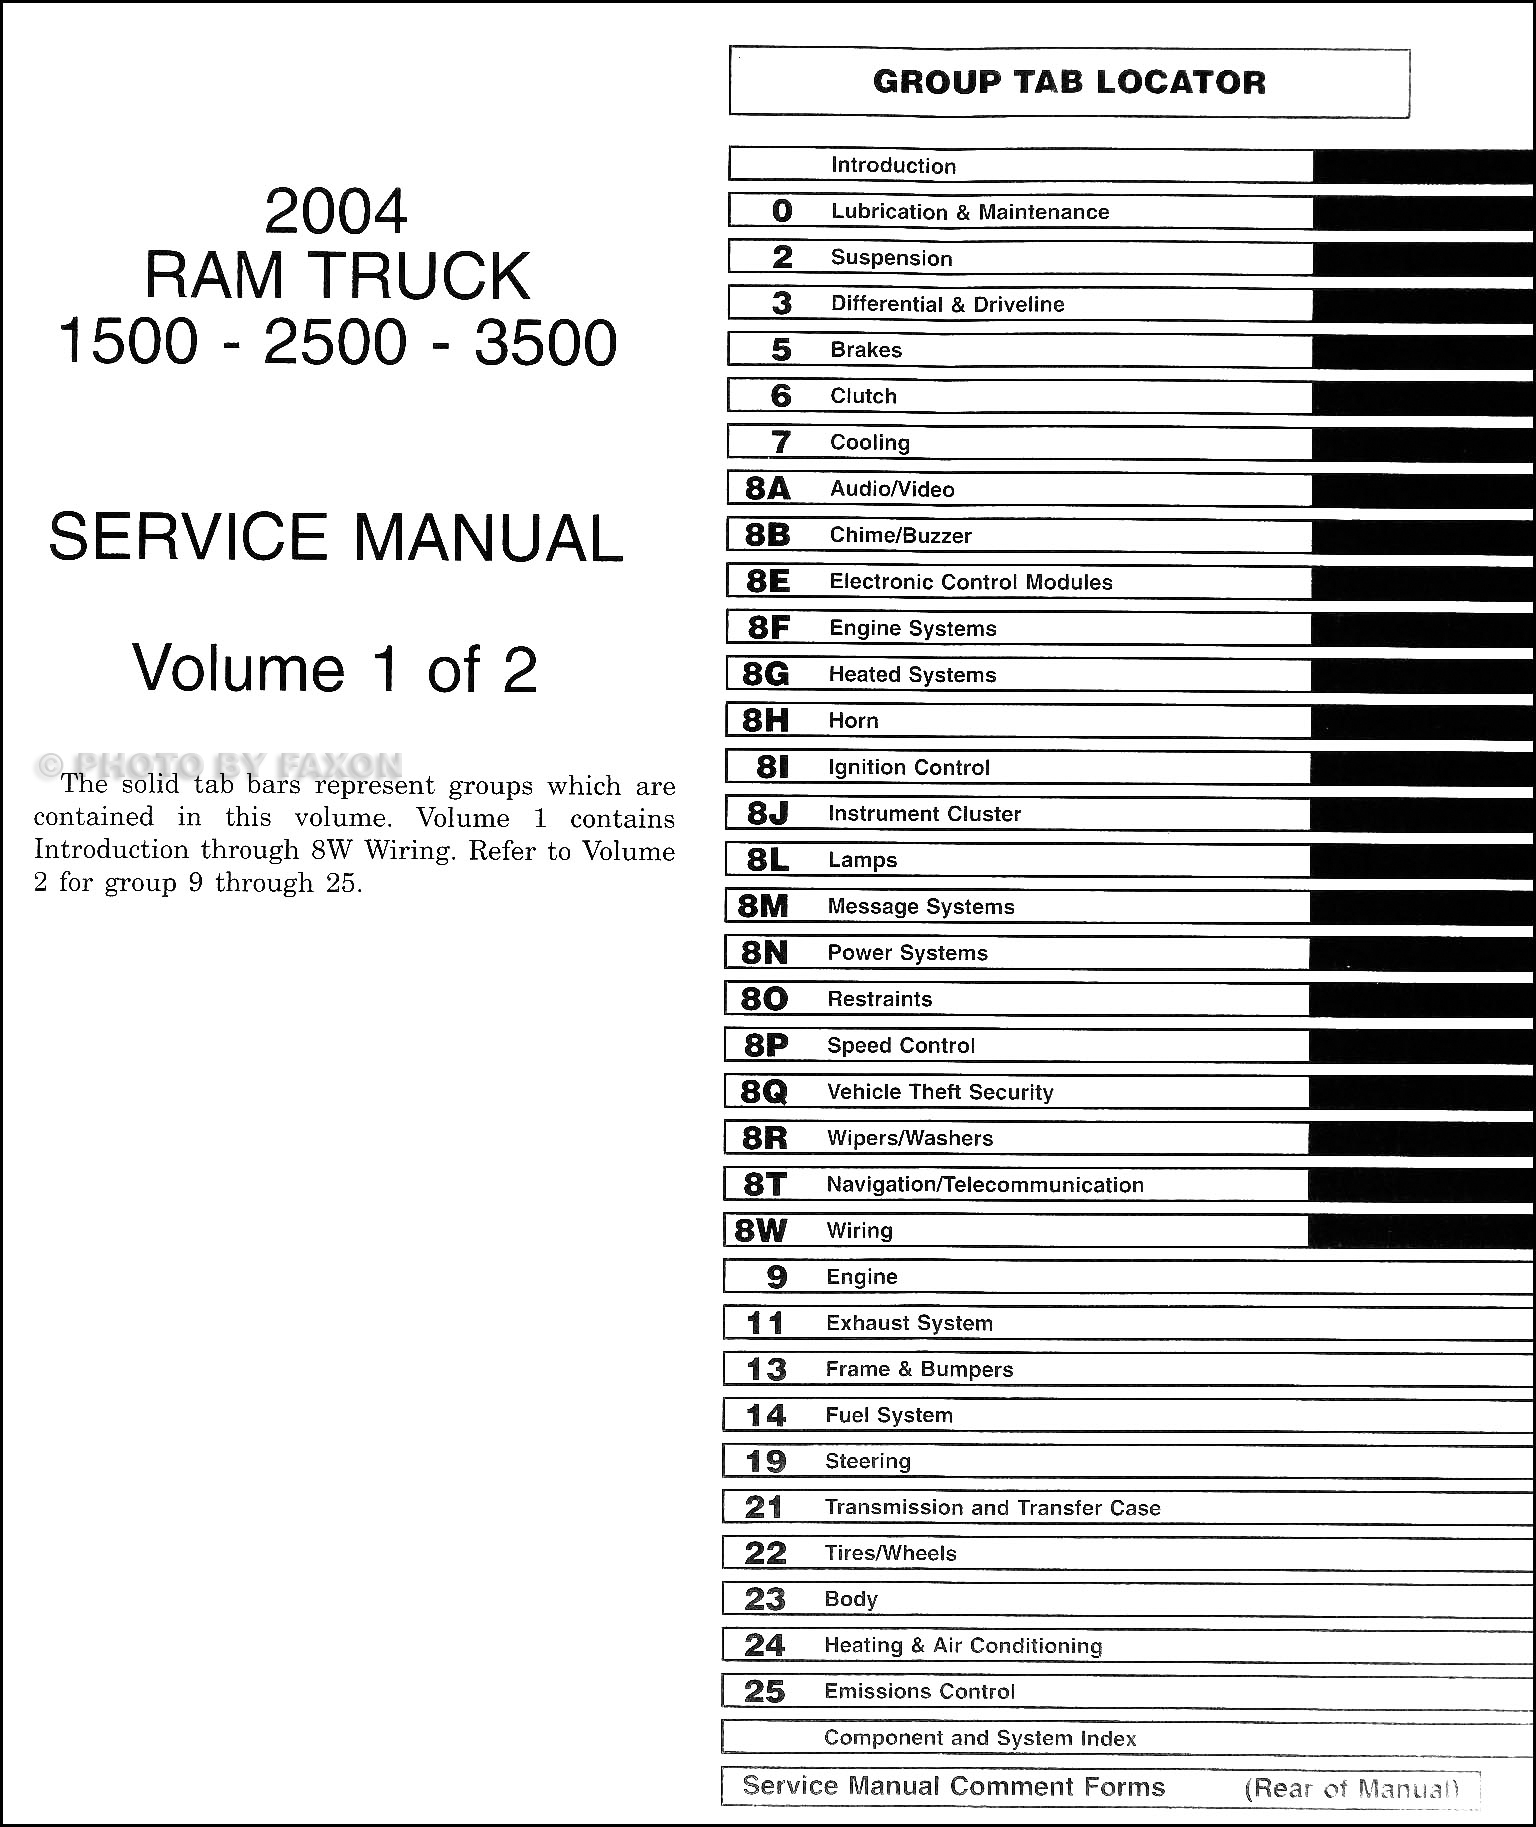 2004 Dodge Ram 1500-3500 Repair Shop Manual Original 2